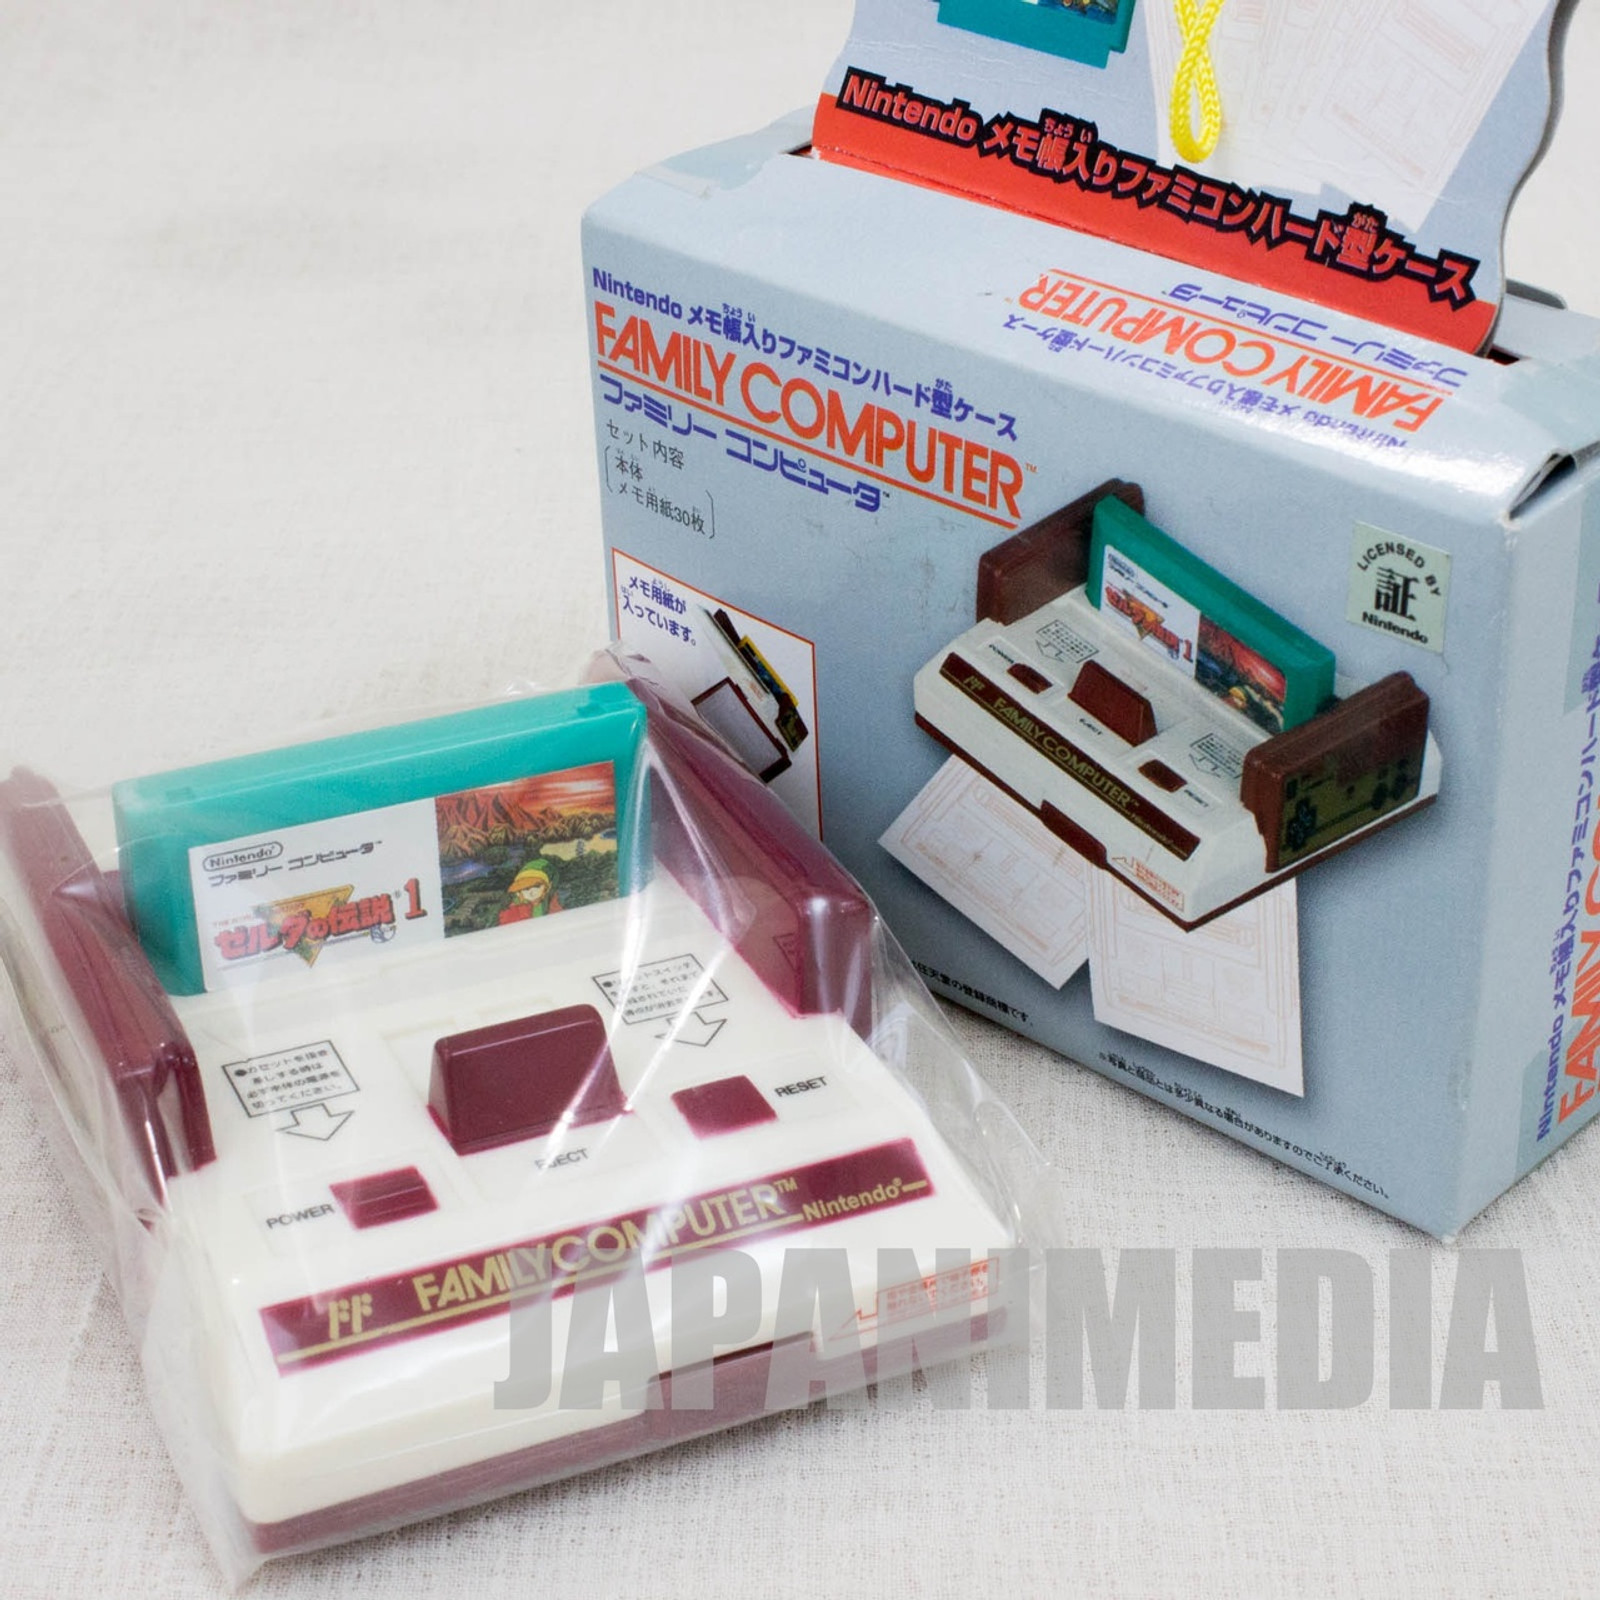 Legend of Zelda Nintendo NES Famicom Family Computer Type Memo Paper Case JAPAN